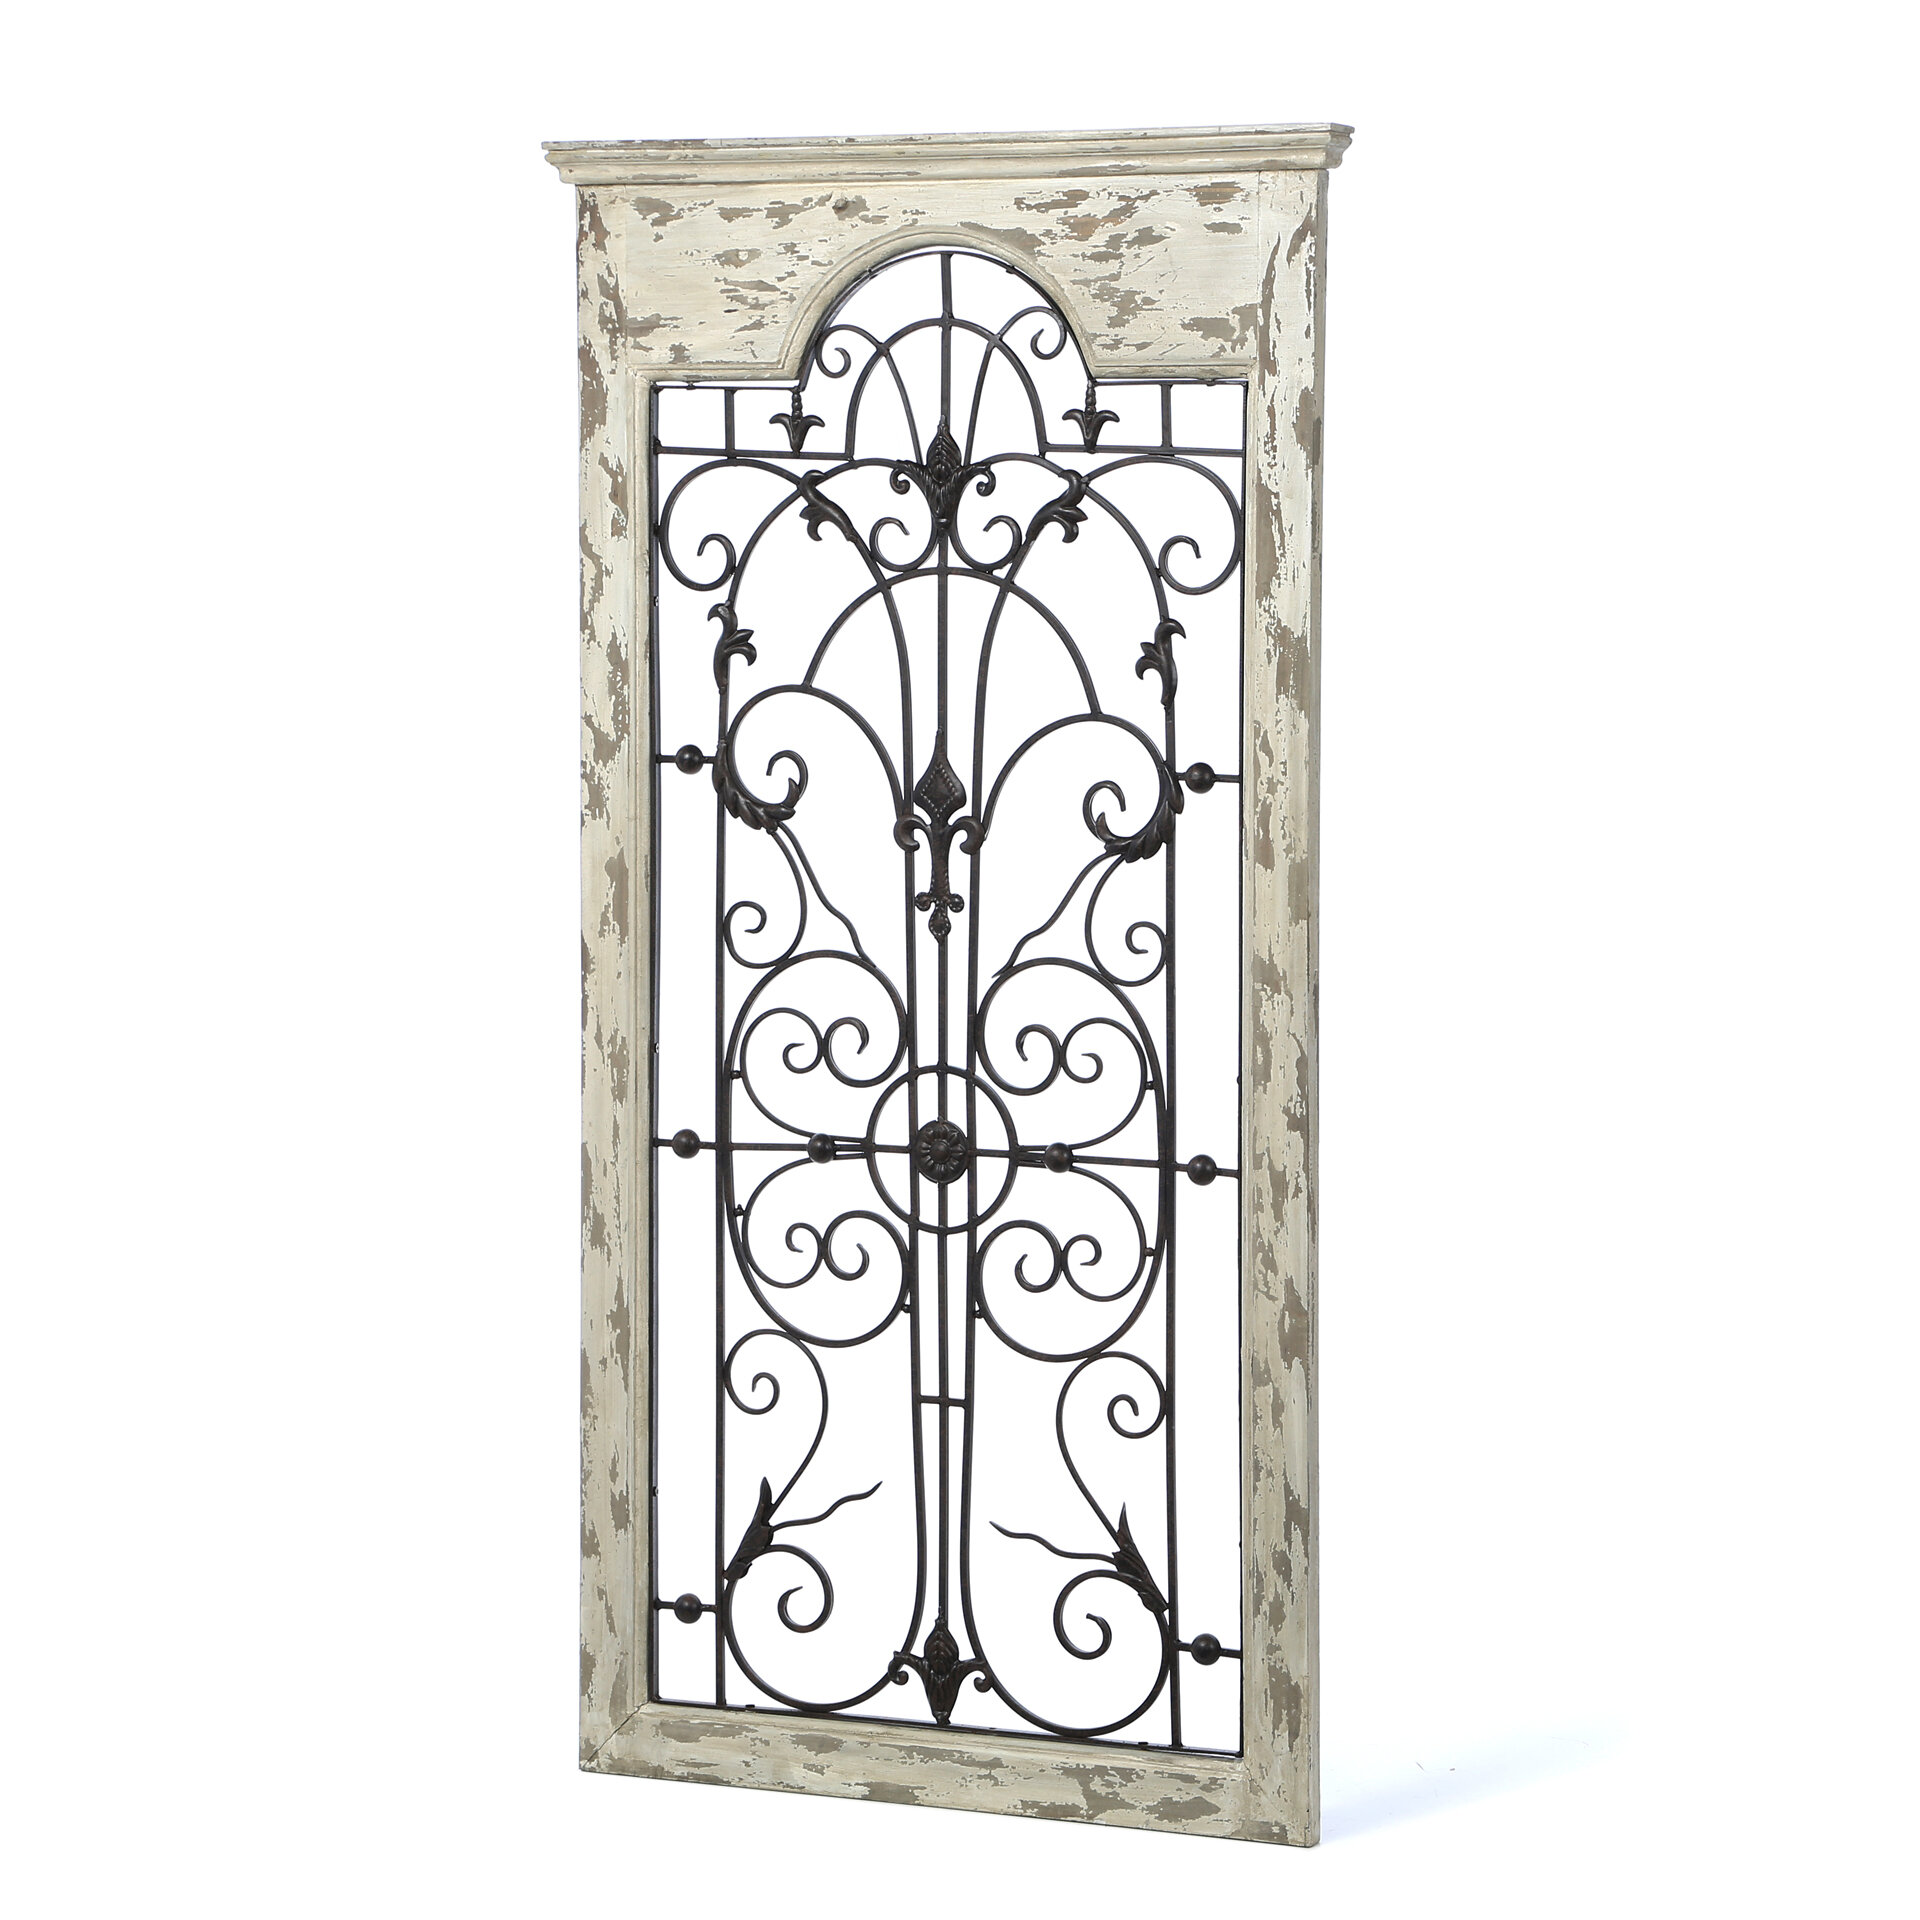 Wood And Metal Door Wall Decor Delectable One Allium Way Gate White Wood And Metal Wall Décor & Reviews Design Decoration